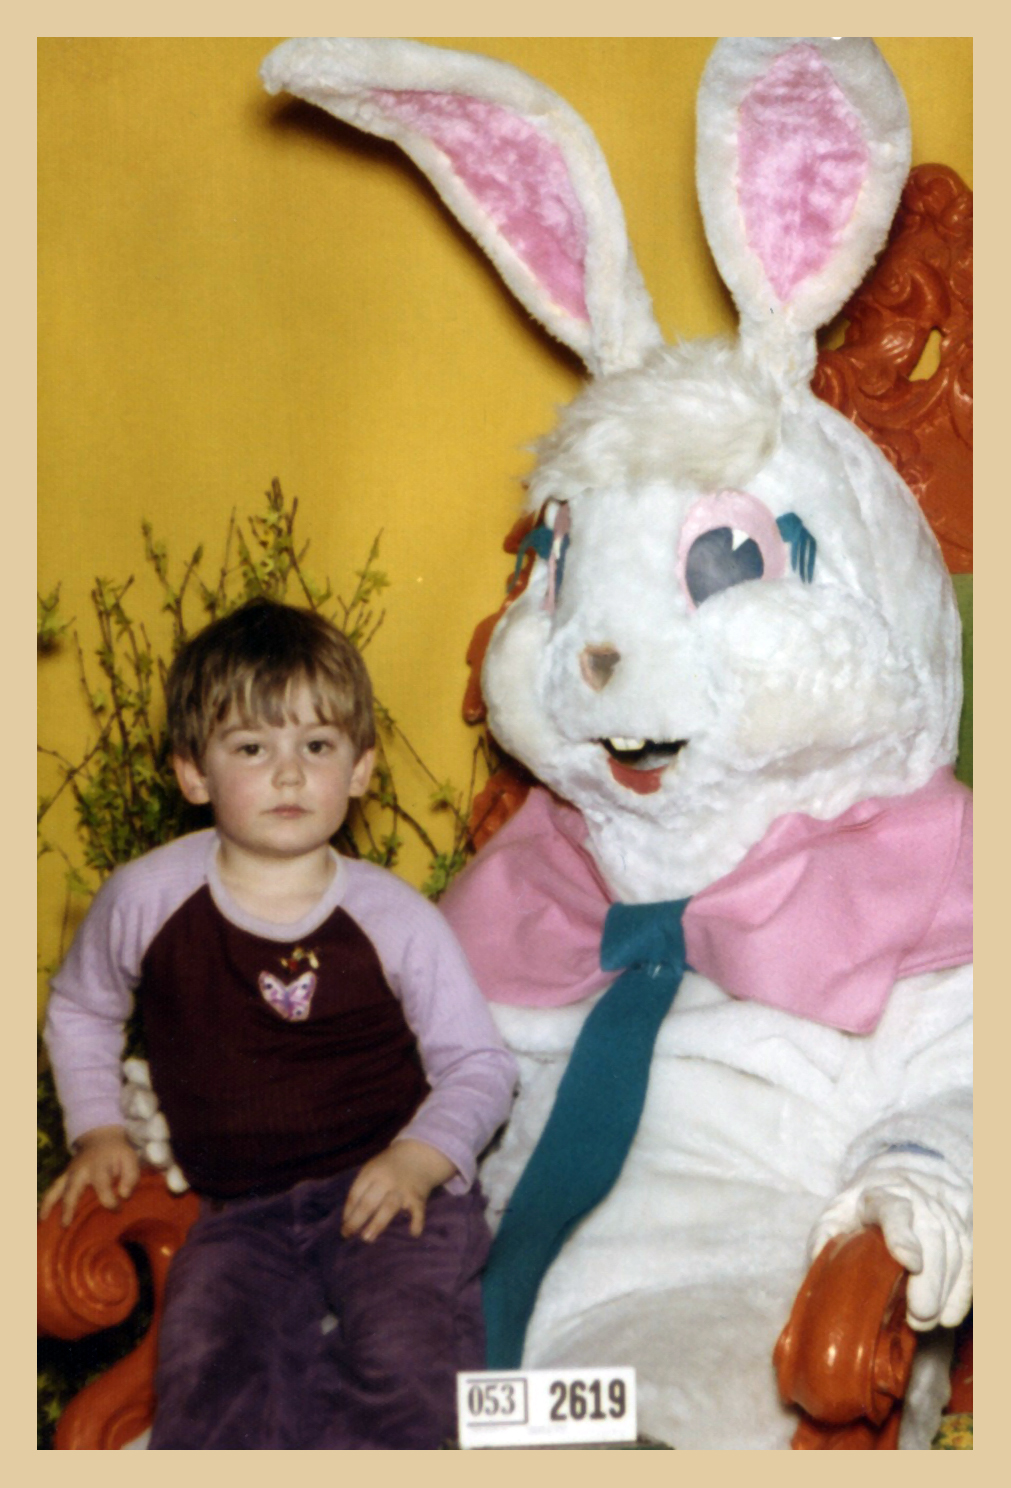 Scary Easter Bunny Photos Scary easter bunny picture